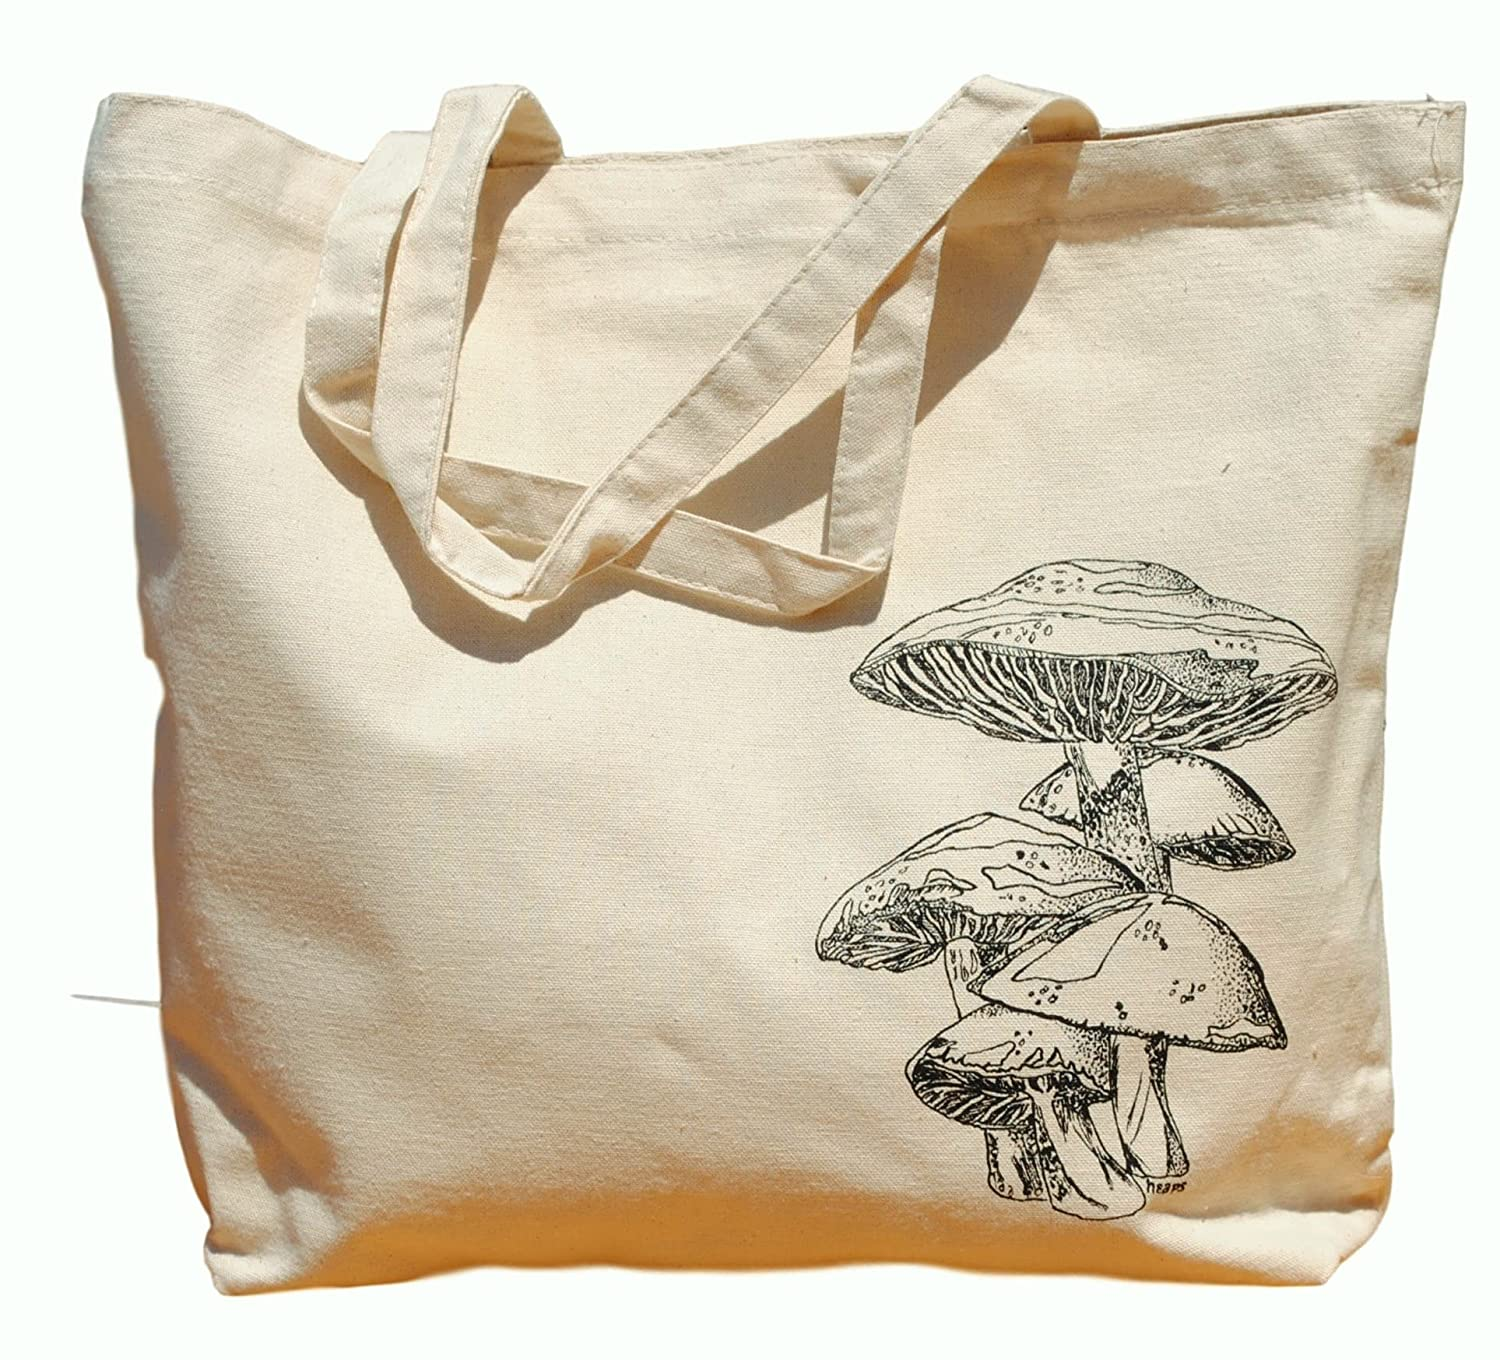 Canvas Tote Bag - Hand Printed Mushroom - Market Travel Beach Shopper Grocery School